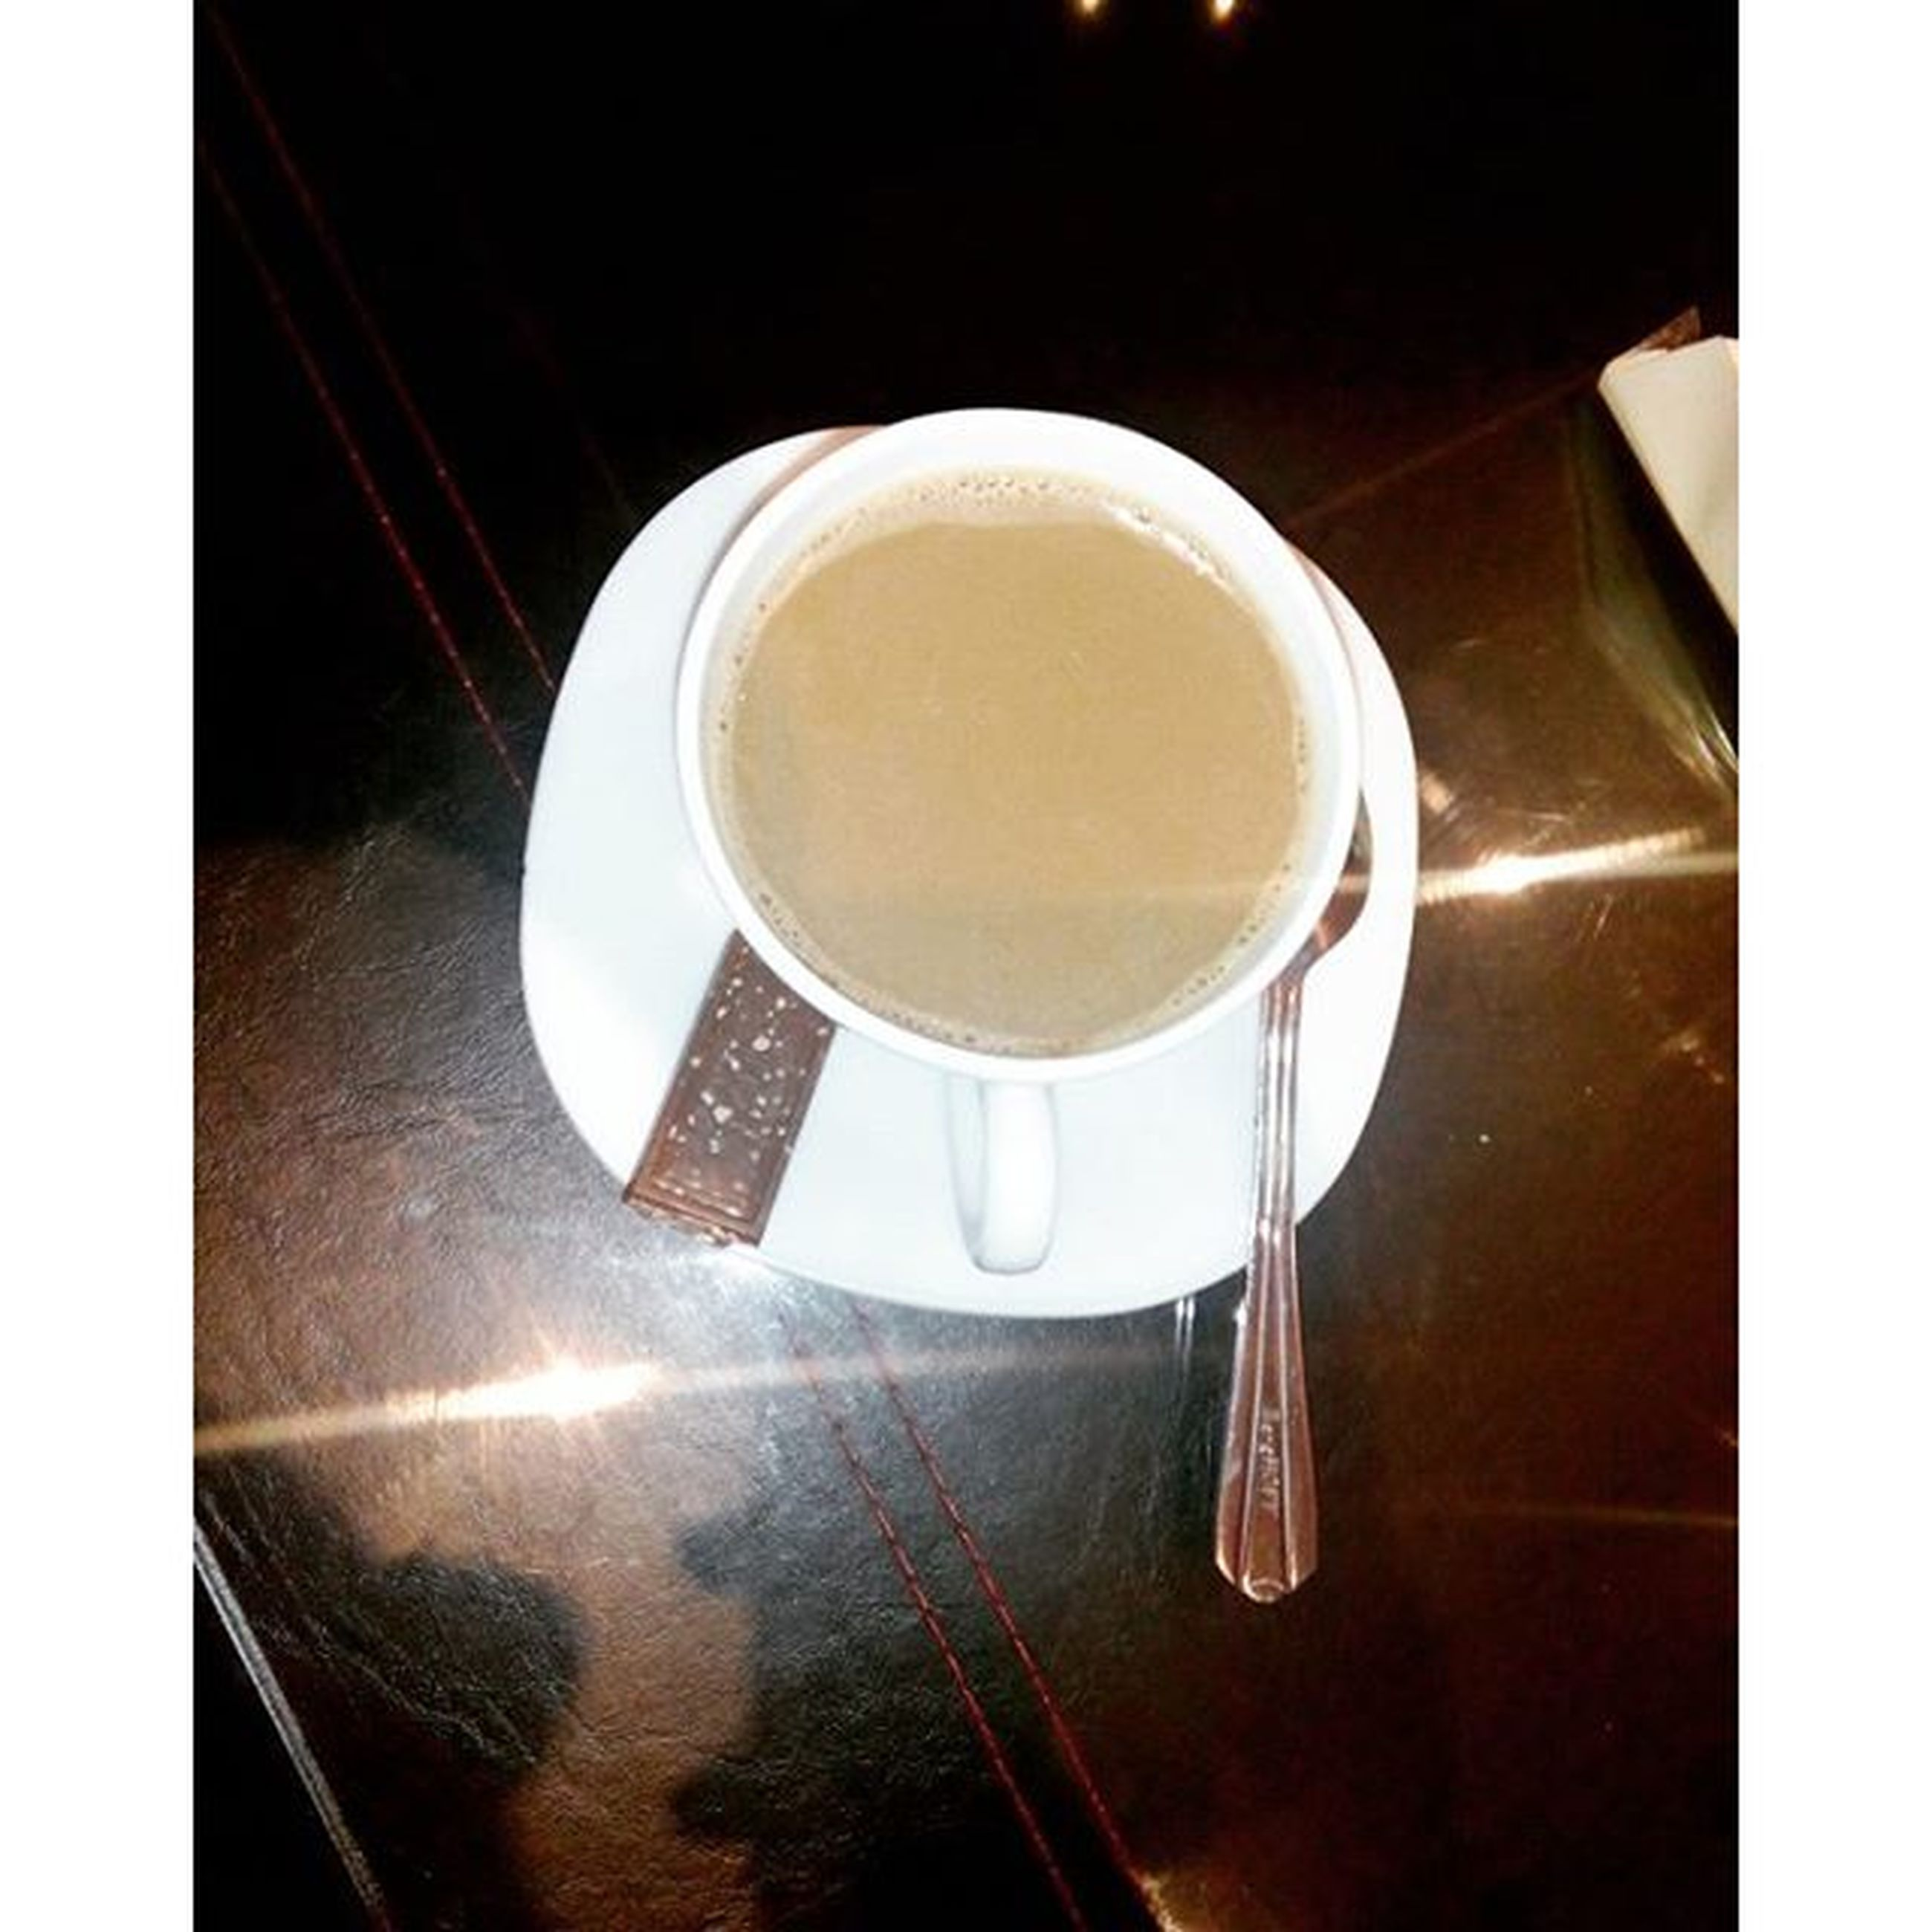 indoors, drink, transfer print, food and drink, coffee cup, refreshment, table, coffee - drink, auto post production filter, still life, saucer, coffee, spoon, cup, high angle view, close-up, freshness, no people, directly above, tea cup